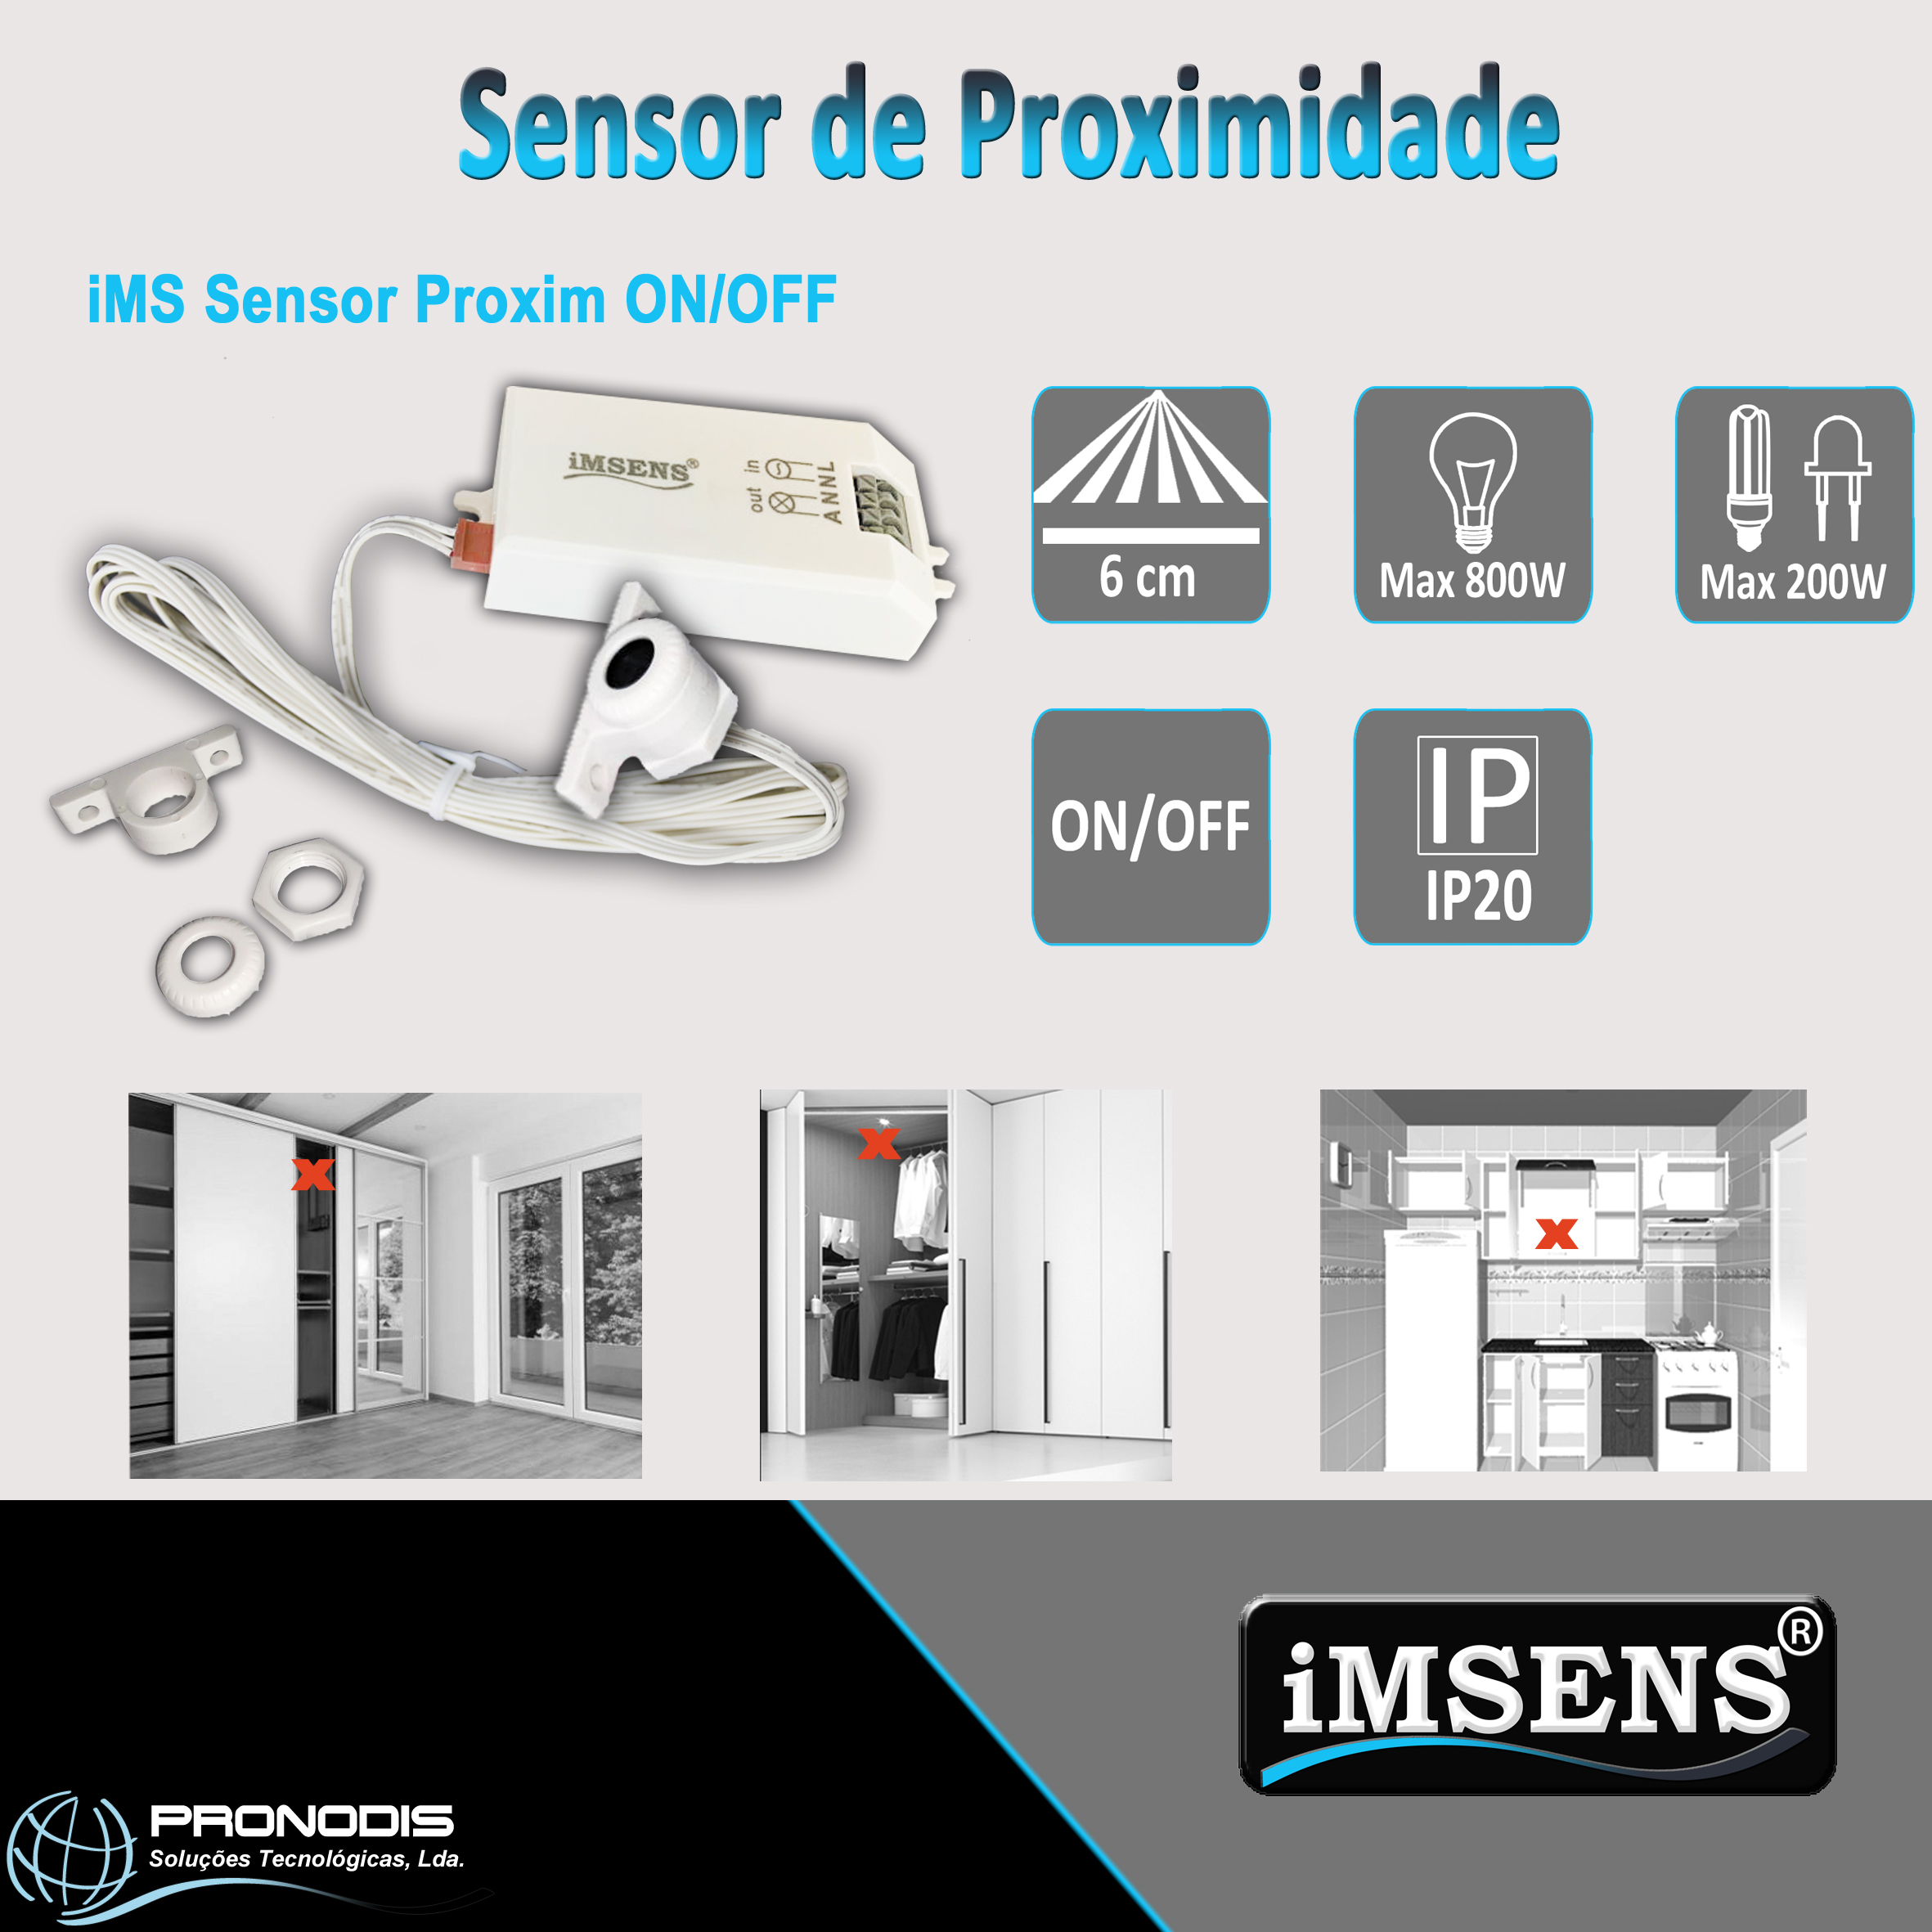 iMS Sensor Proxim ON/OFF - sensor de proximidade